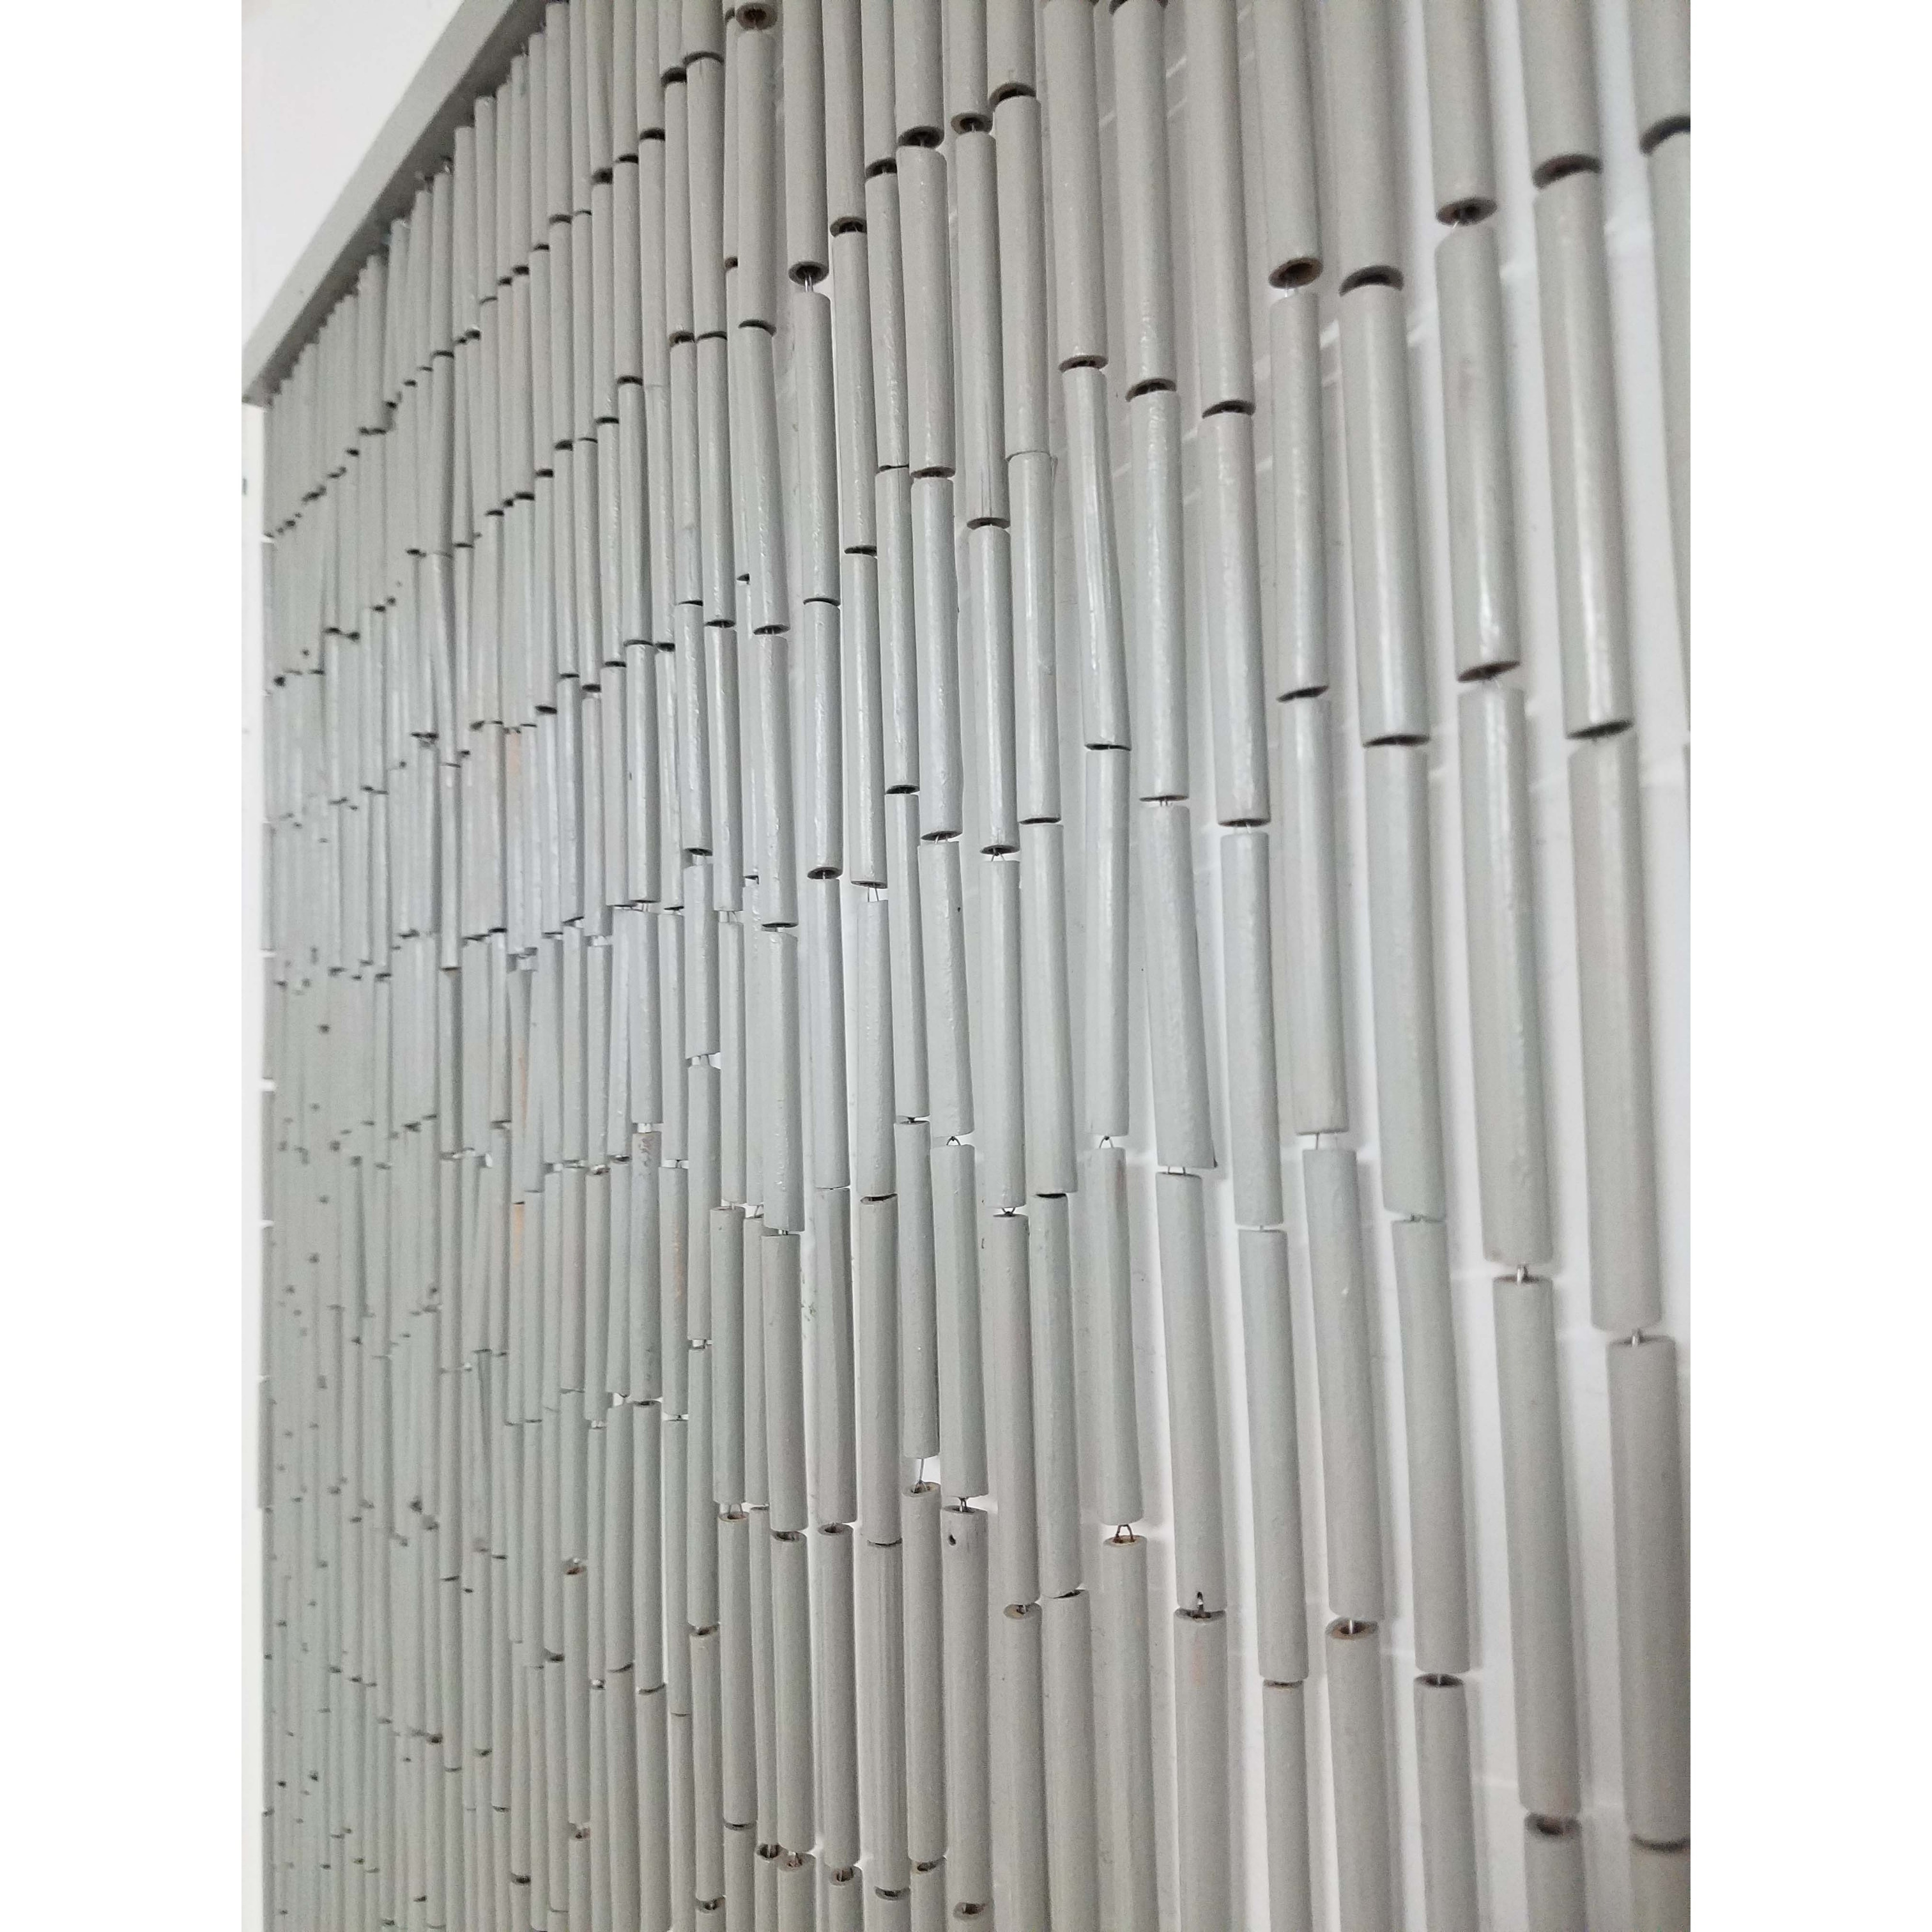 Shop Black Friday Deals On Bamboo Sticks Beaded Curtain Doorway 65 Strings 78 8 H X 35 5 W 78 8h X 35 5 Inch 200x90 Cm 78 8h X 35 5 Inch 200x90 Cm Overstock 23001251 Off White Bohemian Eclectic